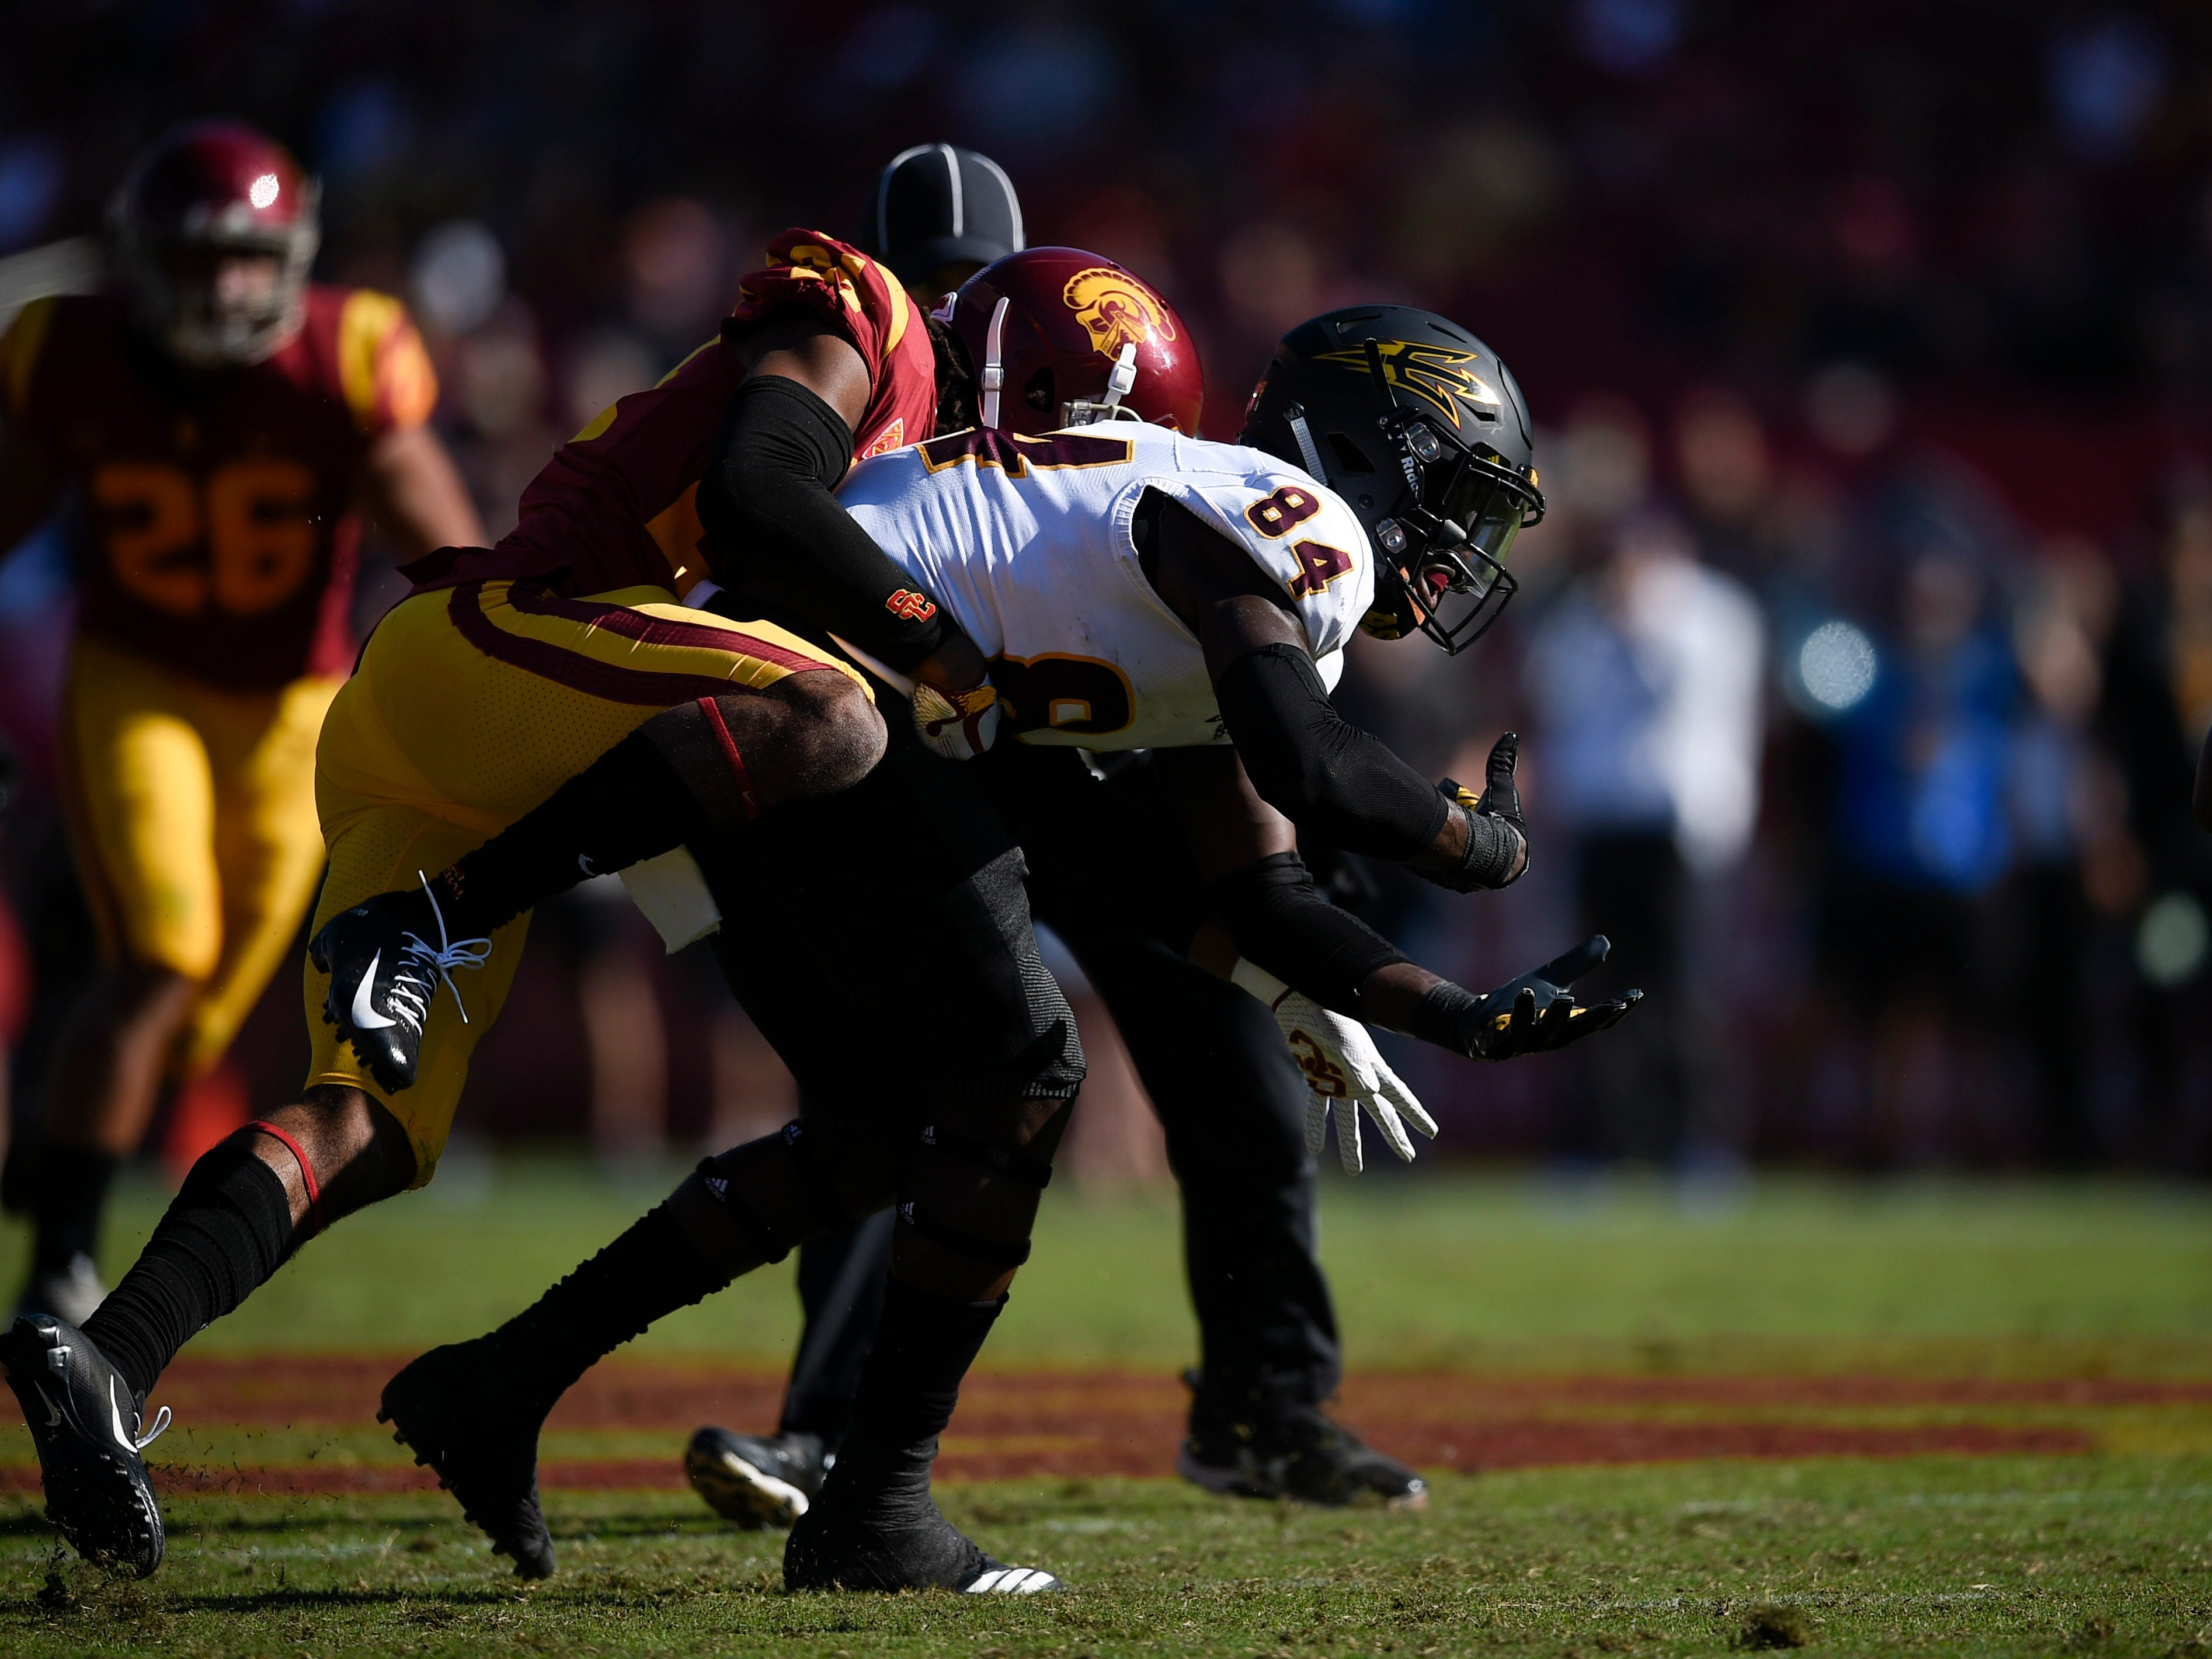 Oct 27, 2018; Los Angeles, CA, USA; Arizona State Sun Devils wide receiver Frank Darby (84) is unable to make a catch while defended by Southern California Trojans corner back Isaiah Langley (24) during the second half at Los Angeles Memorial Coliseum. Mandatory Credit: Kelvin Kuo-USA TODAY Sports